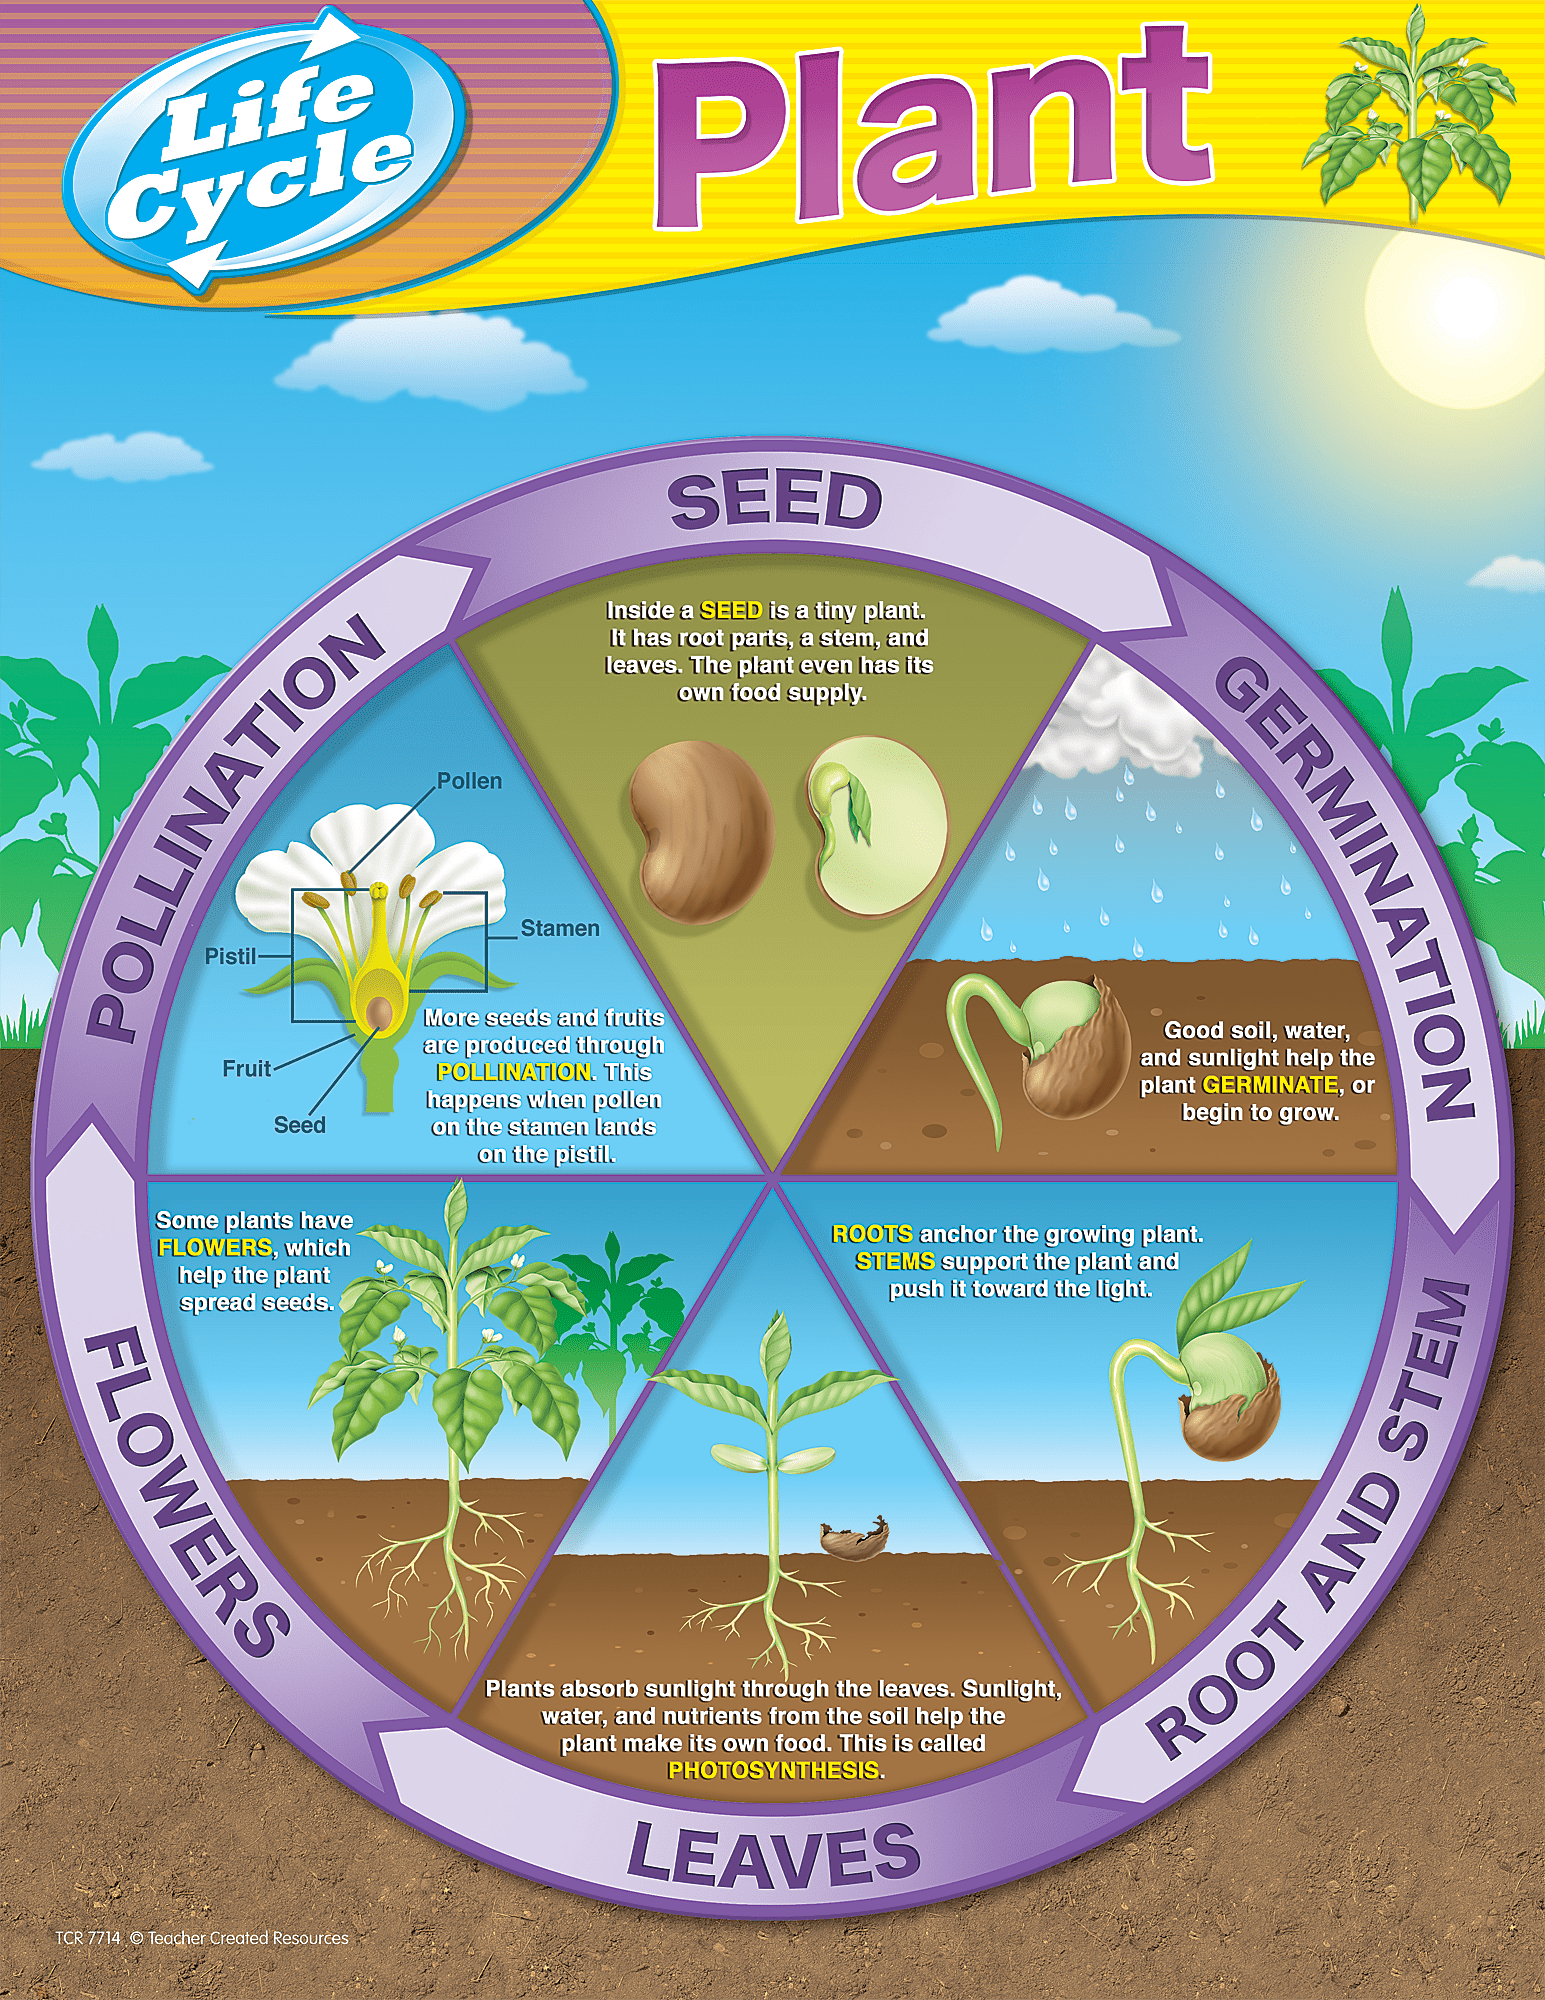 Flowering Plant Life Cycle Diagram Ks2